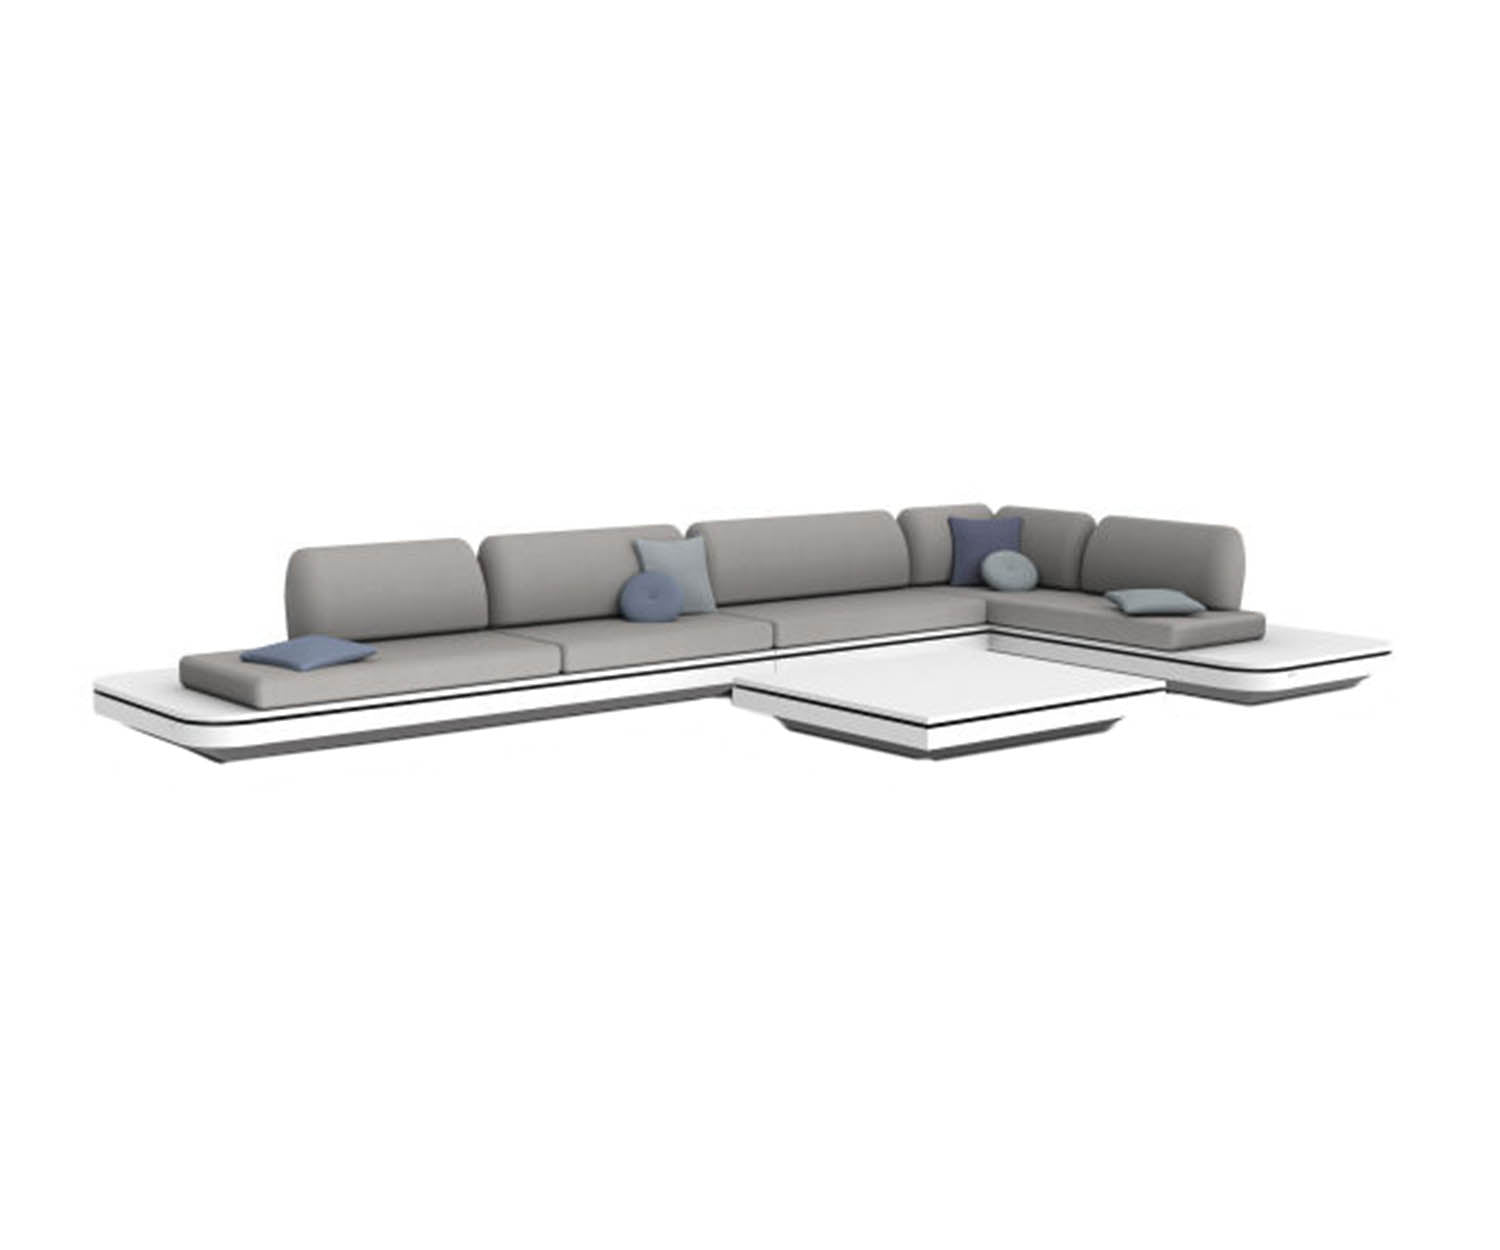 Elements Concept 2 Sectional Manutti